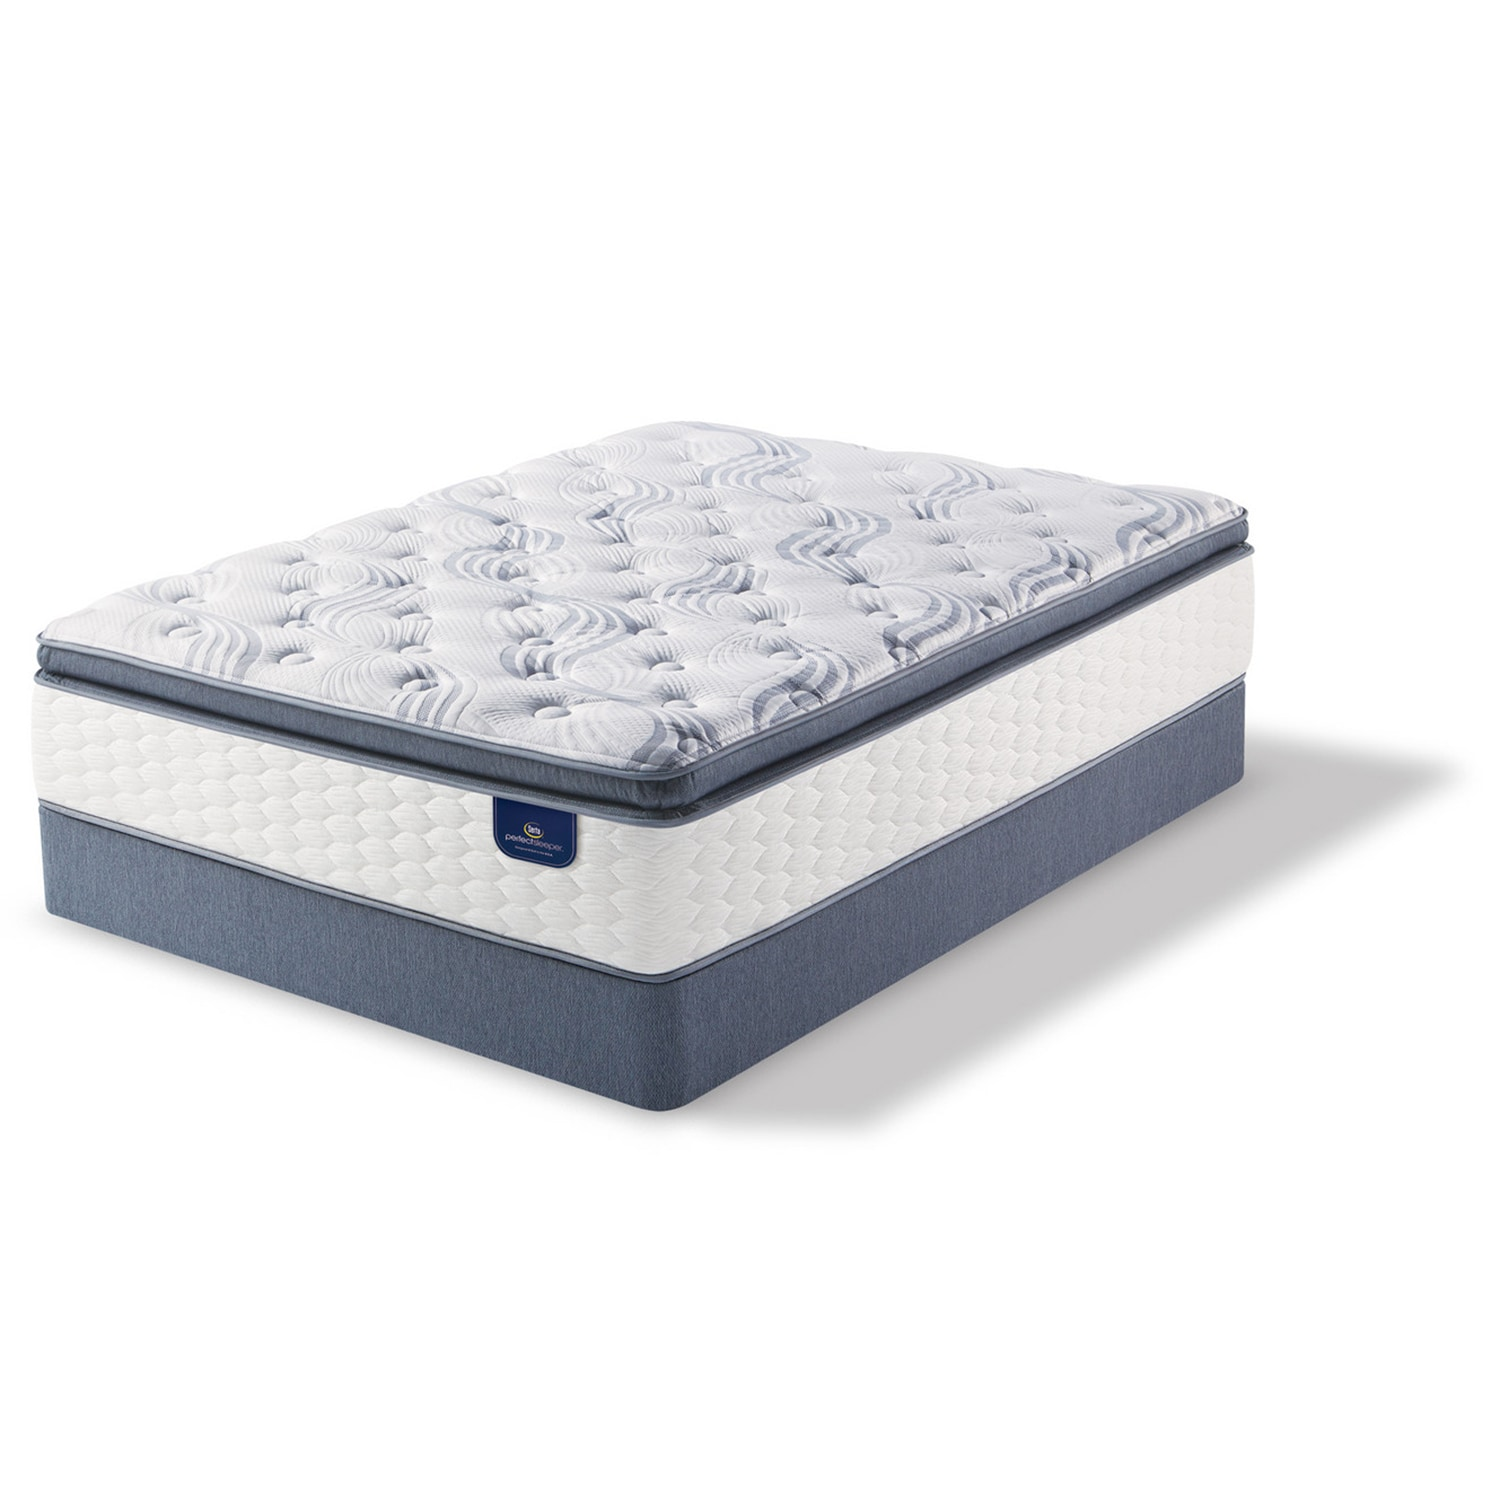 simmons mattress davidson silver mattresses canada beautyrest country pillow by top topper sleep